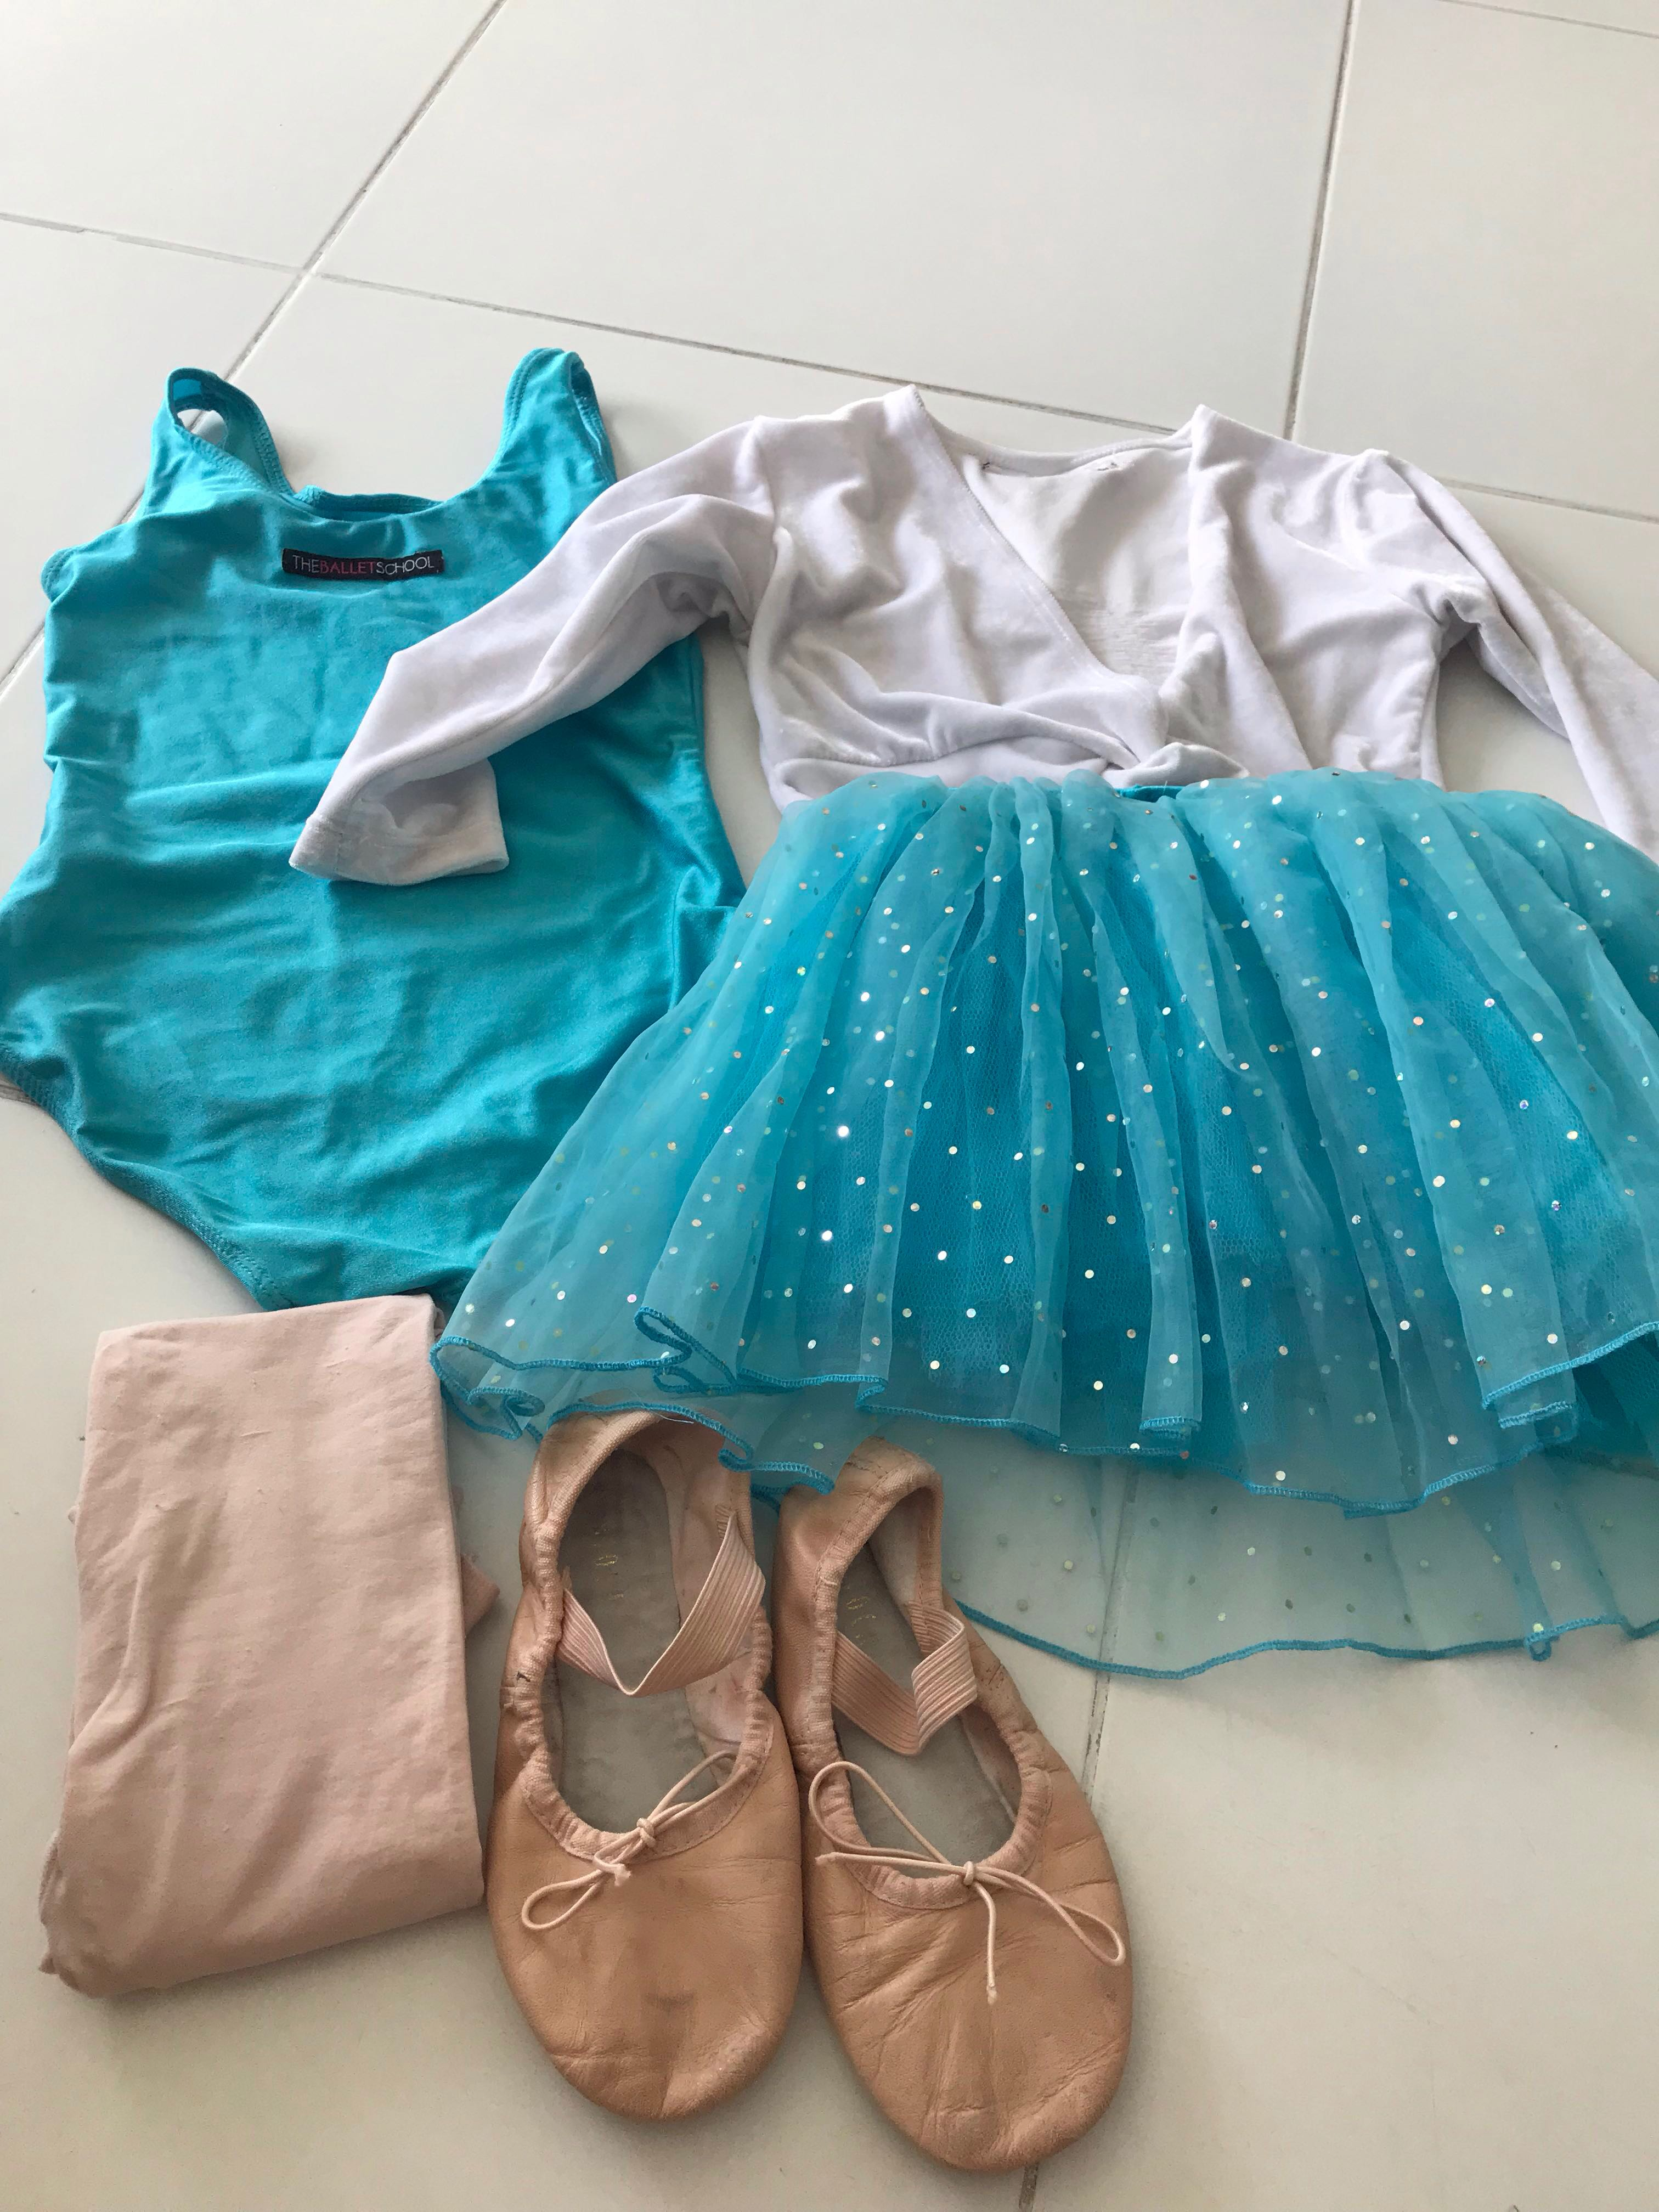 42a15878c72c3 Preloved the ballet school uniform size 1 for toddler class .. ideal for  kids who want start learning ballet.. Shoe brand are Bloch size 17cm .. not  for ...